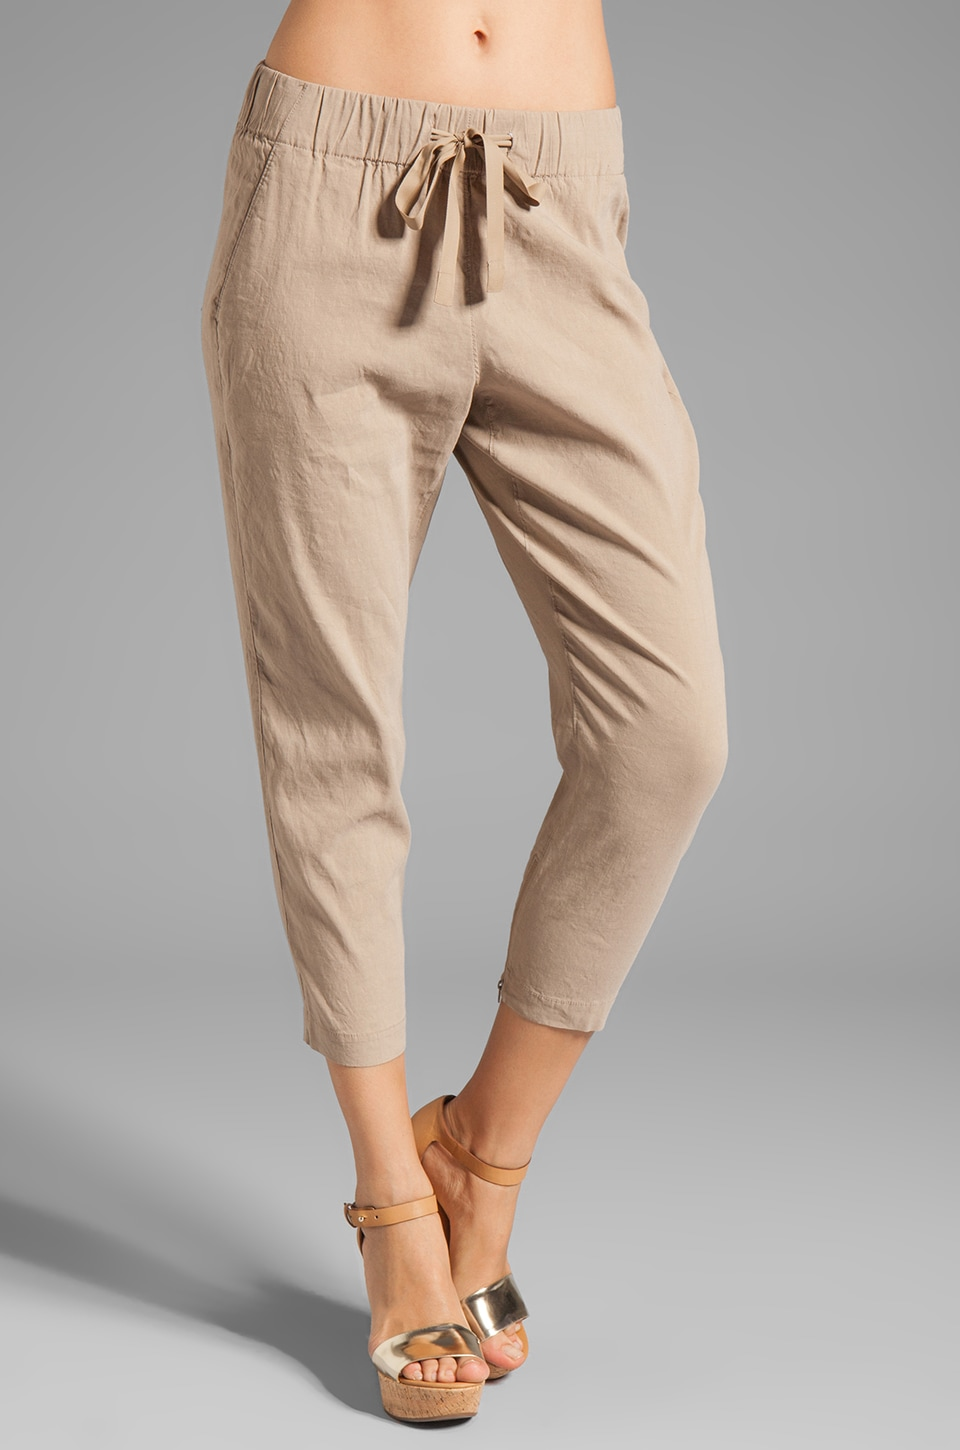 Theory Toro with Crunch Pant in Sandy Beige